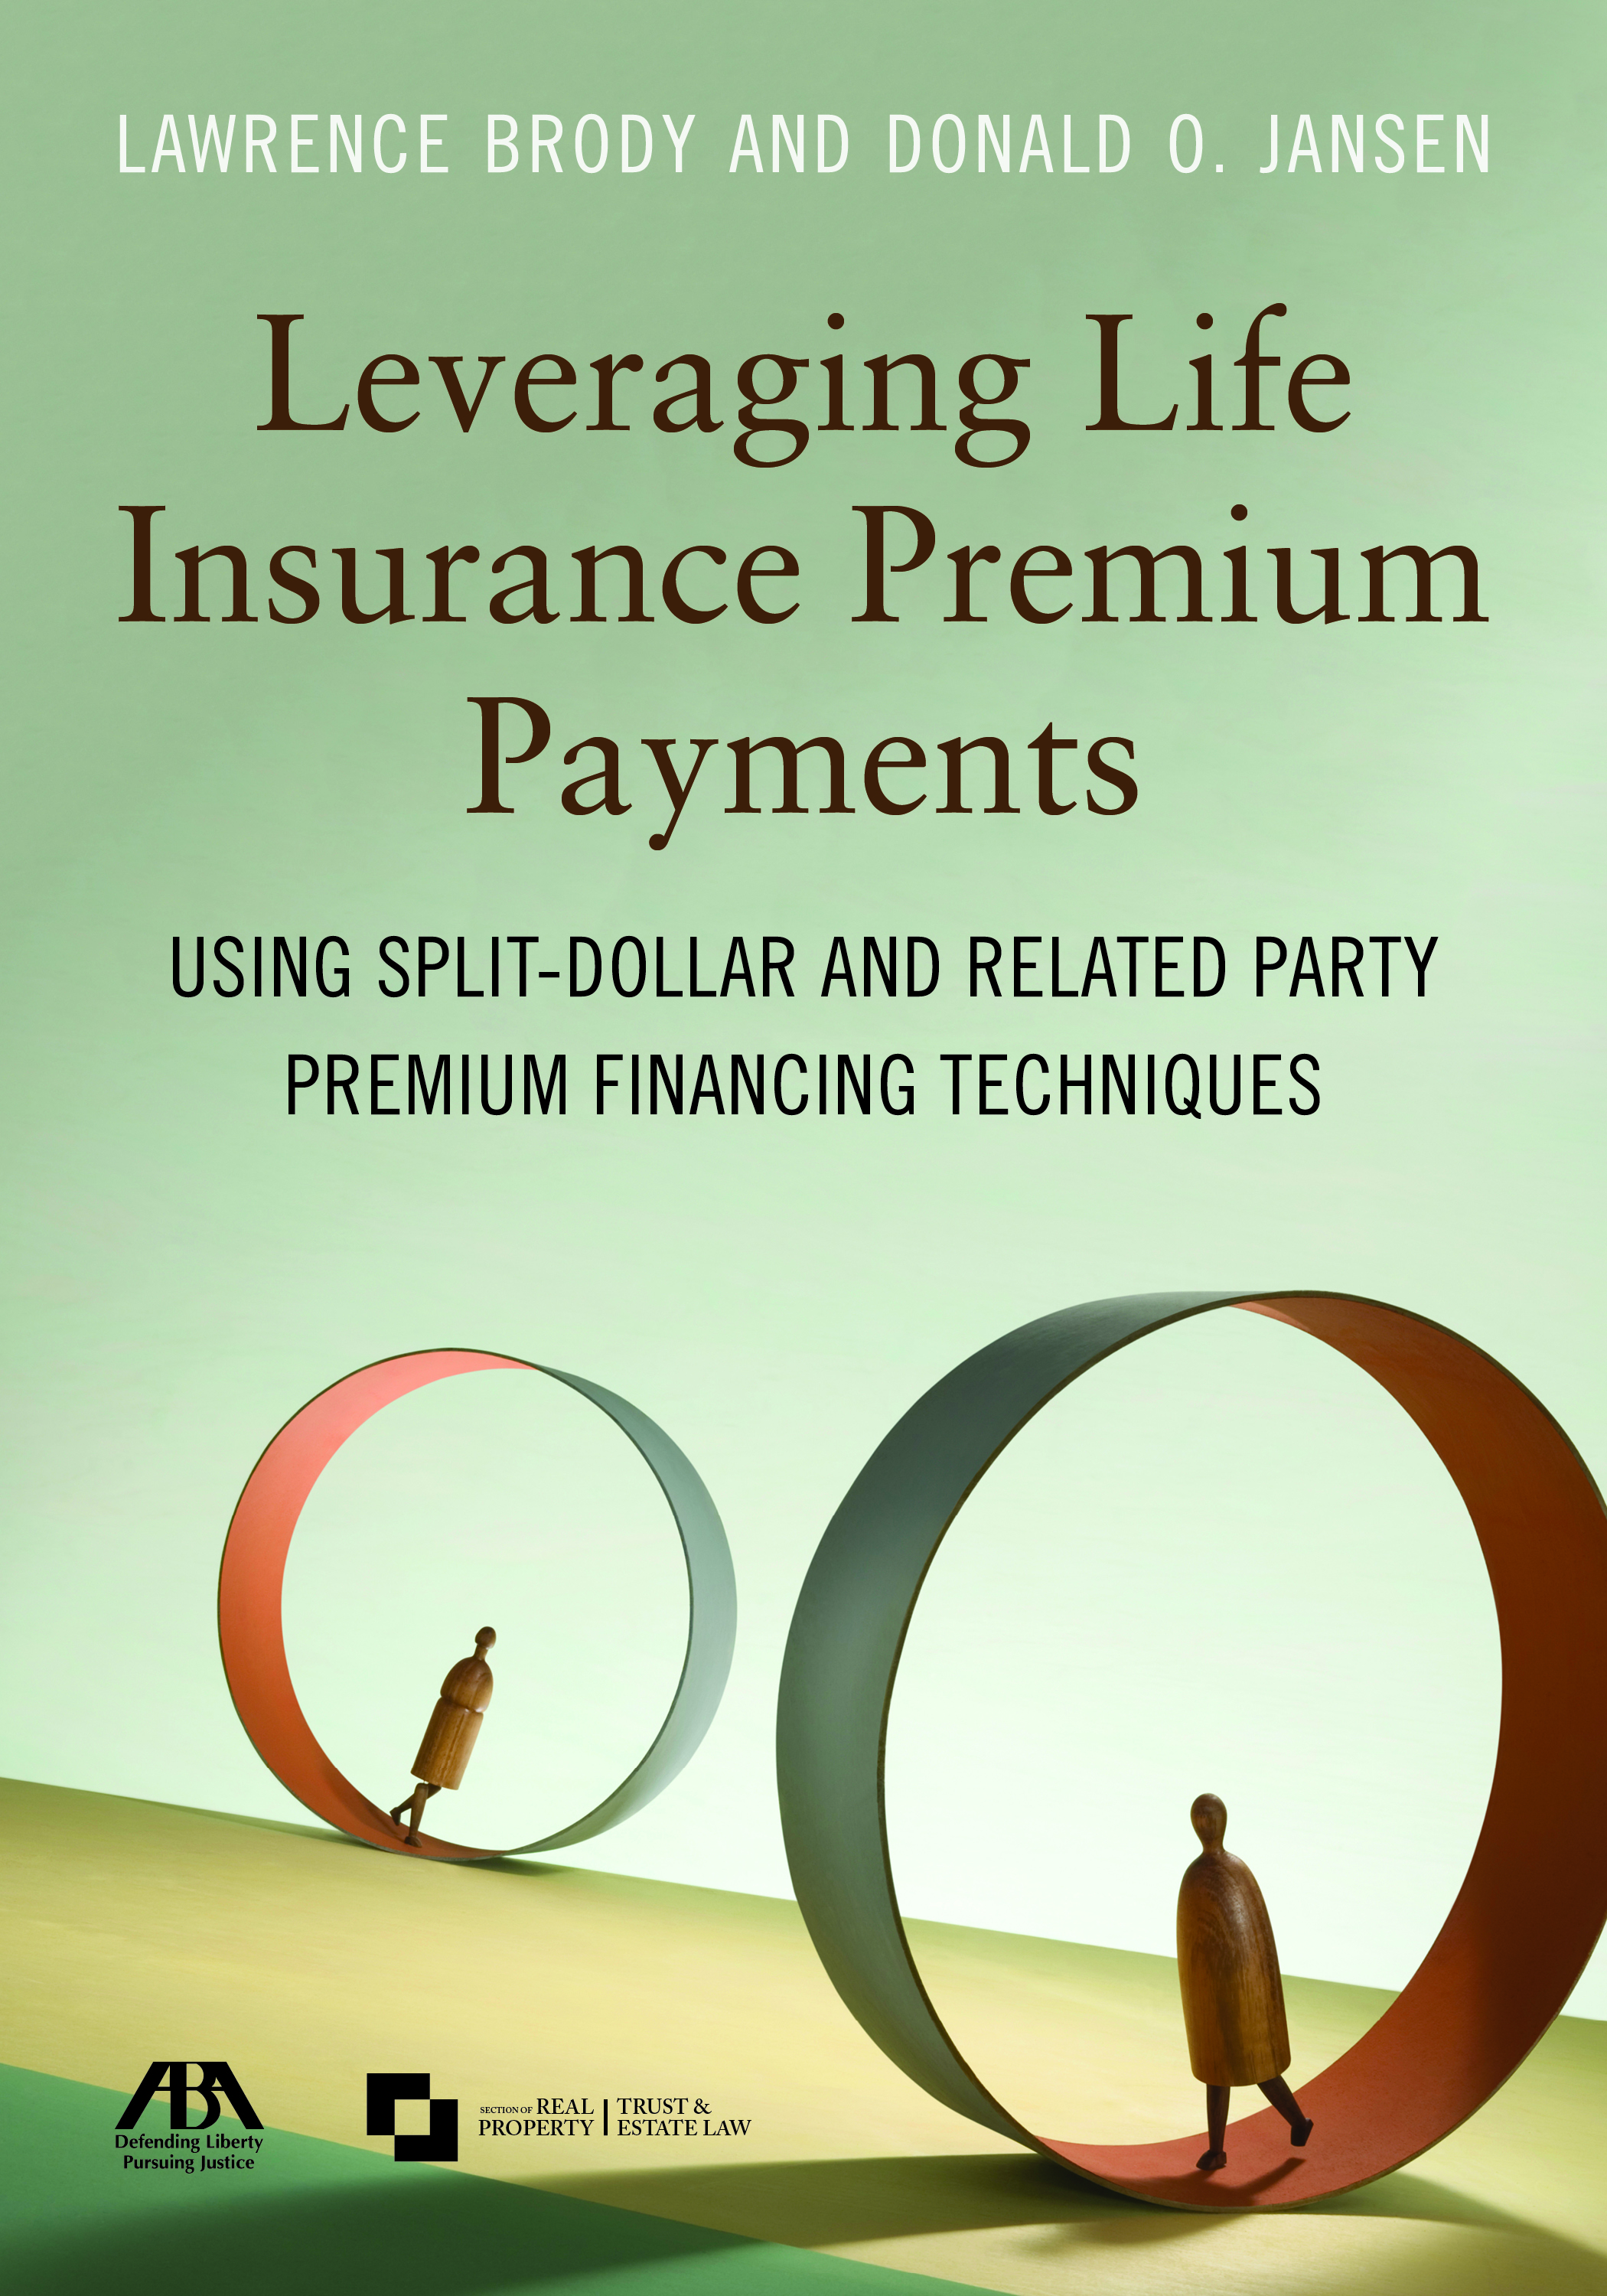 Leveraging Life Insurance Premium Payments: Using Split-Dollar and Related Party Premium Financing Techniques